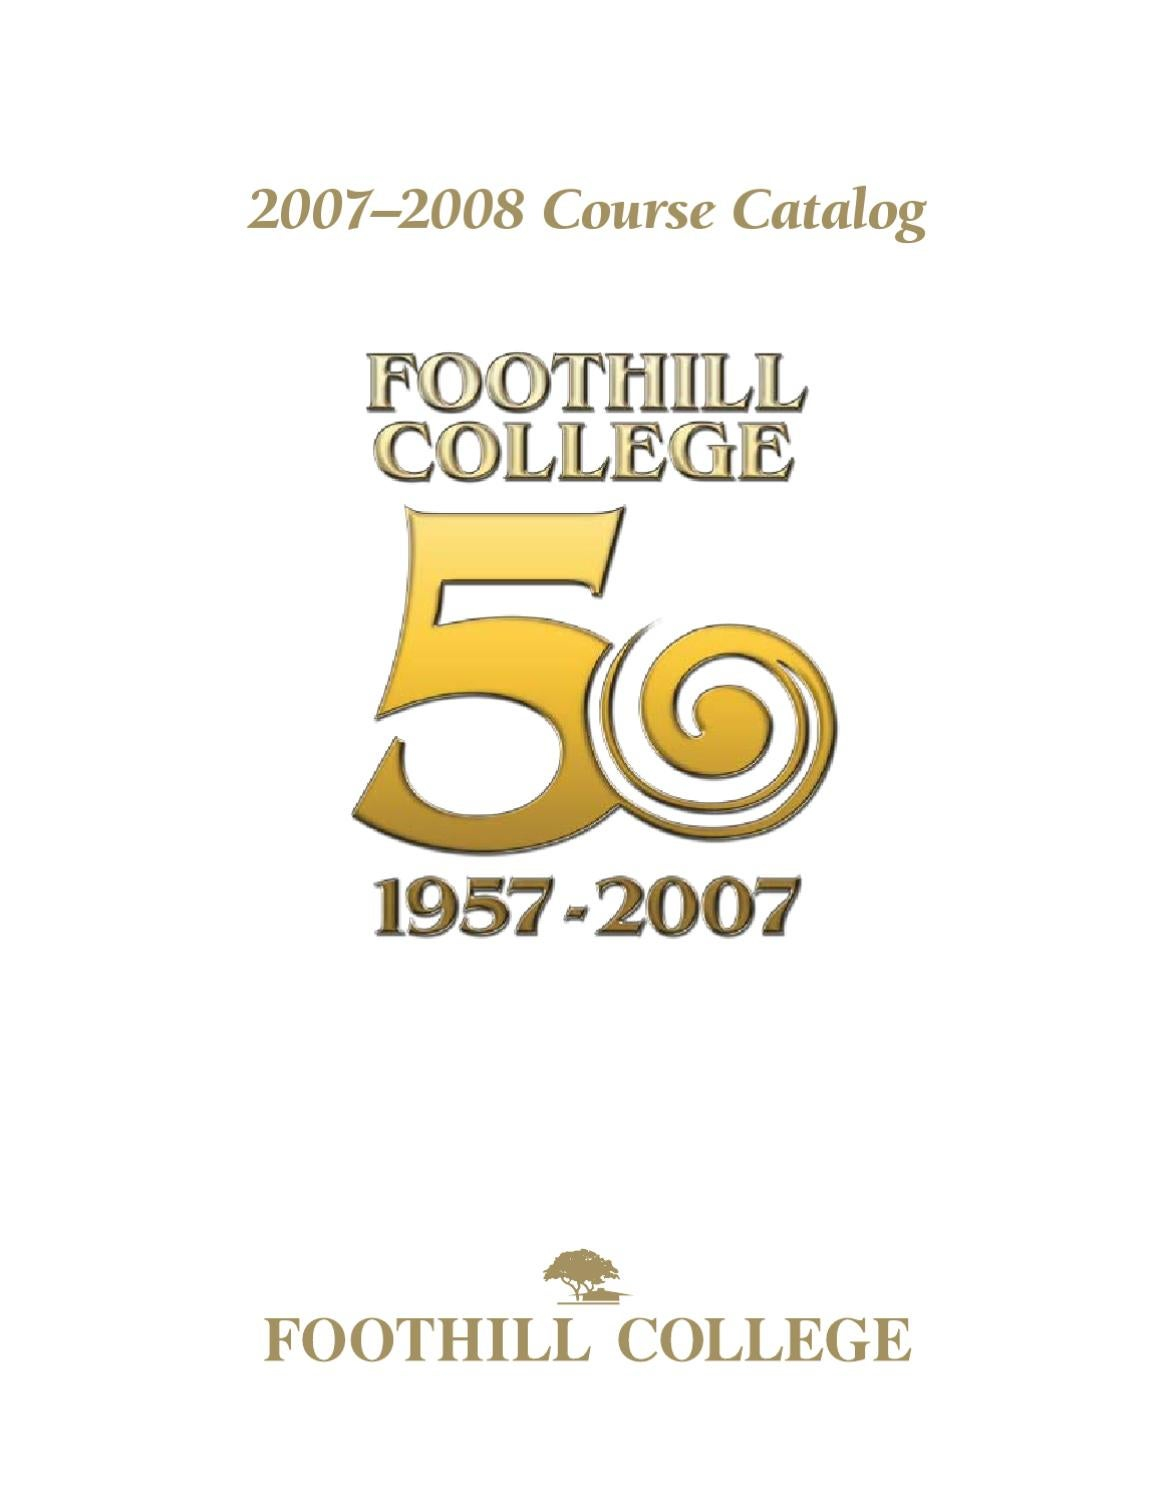 foothill college 2007 2008 course catalog by foothill college issuu